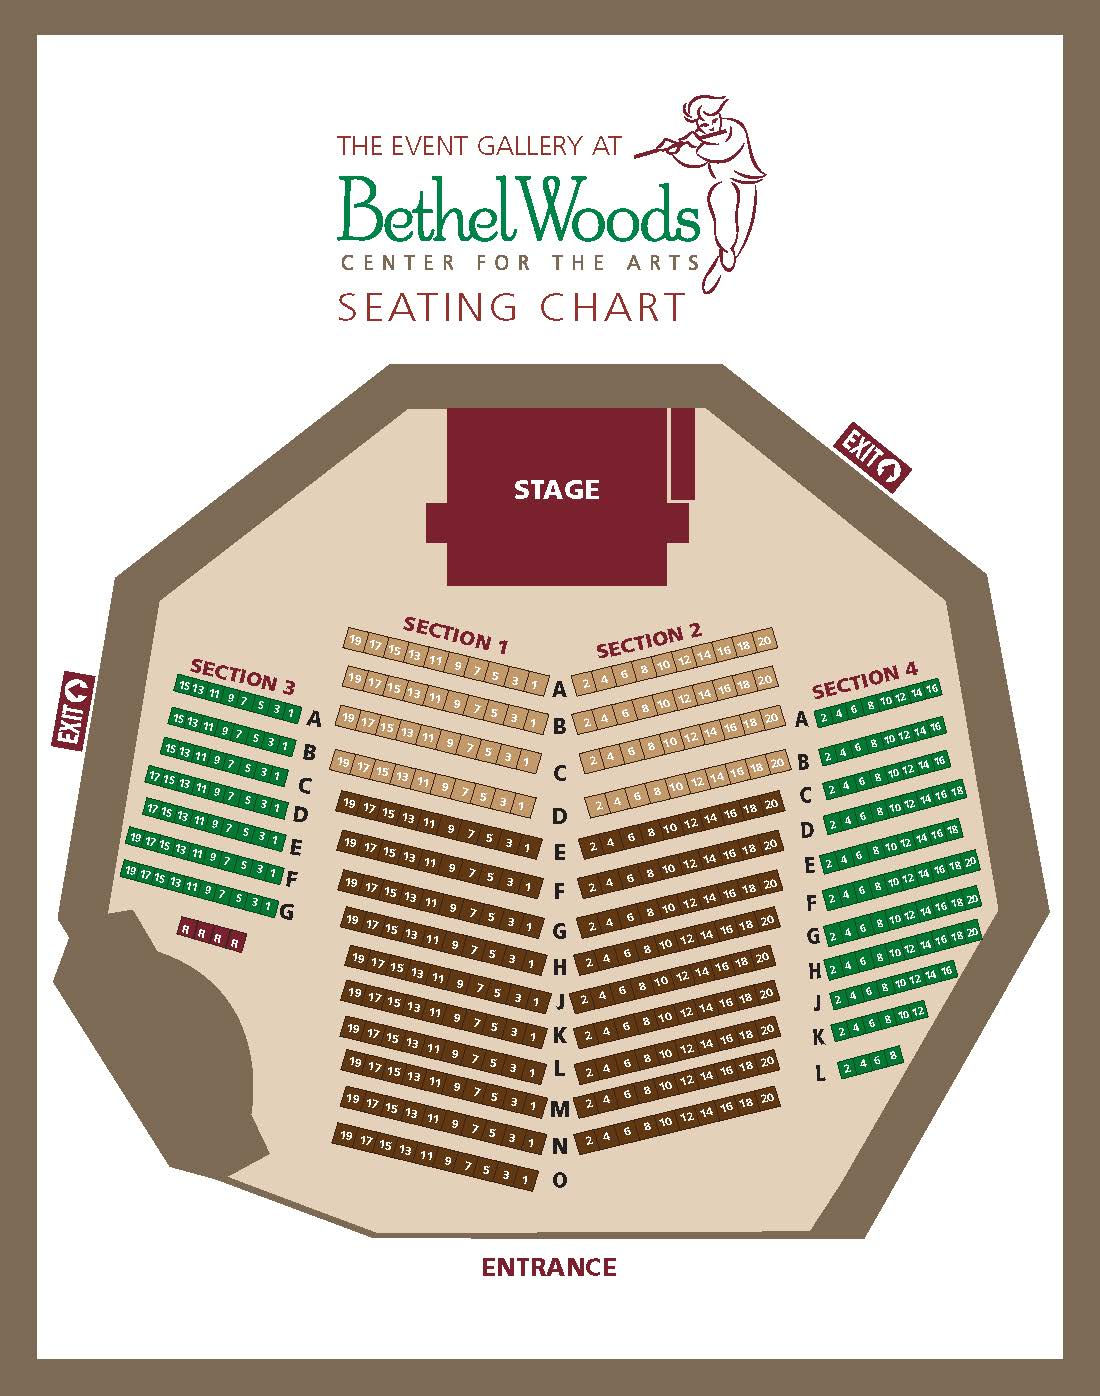 Event Gallery at Bethel Woods seating chart